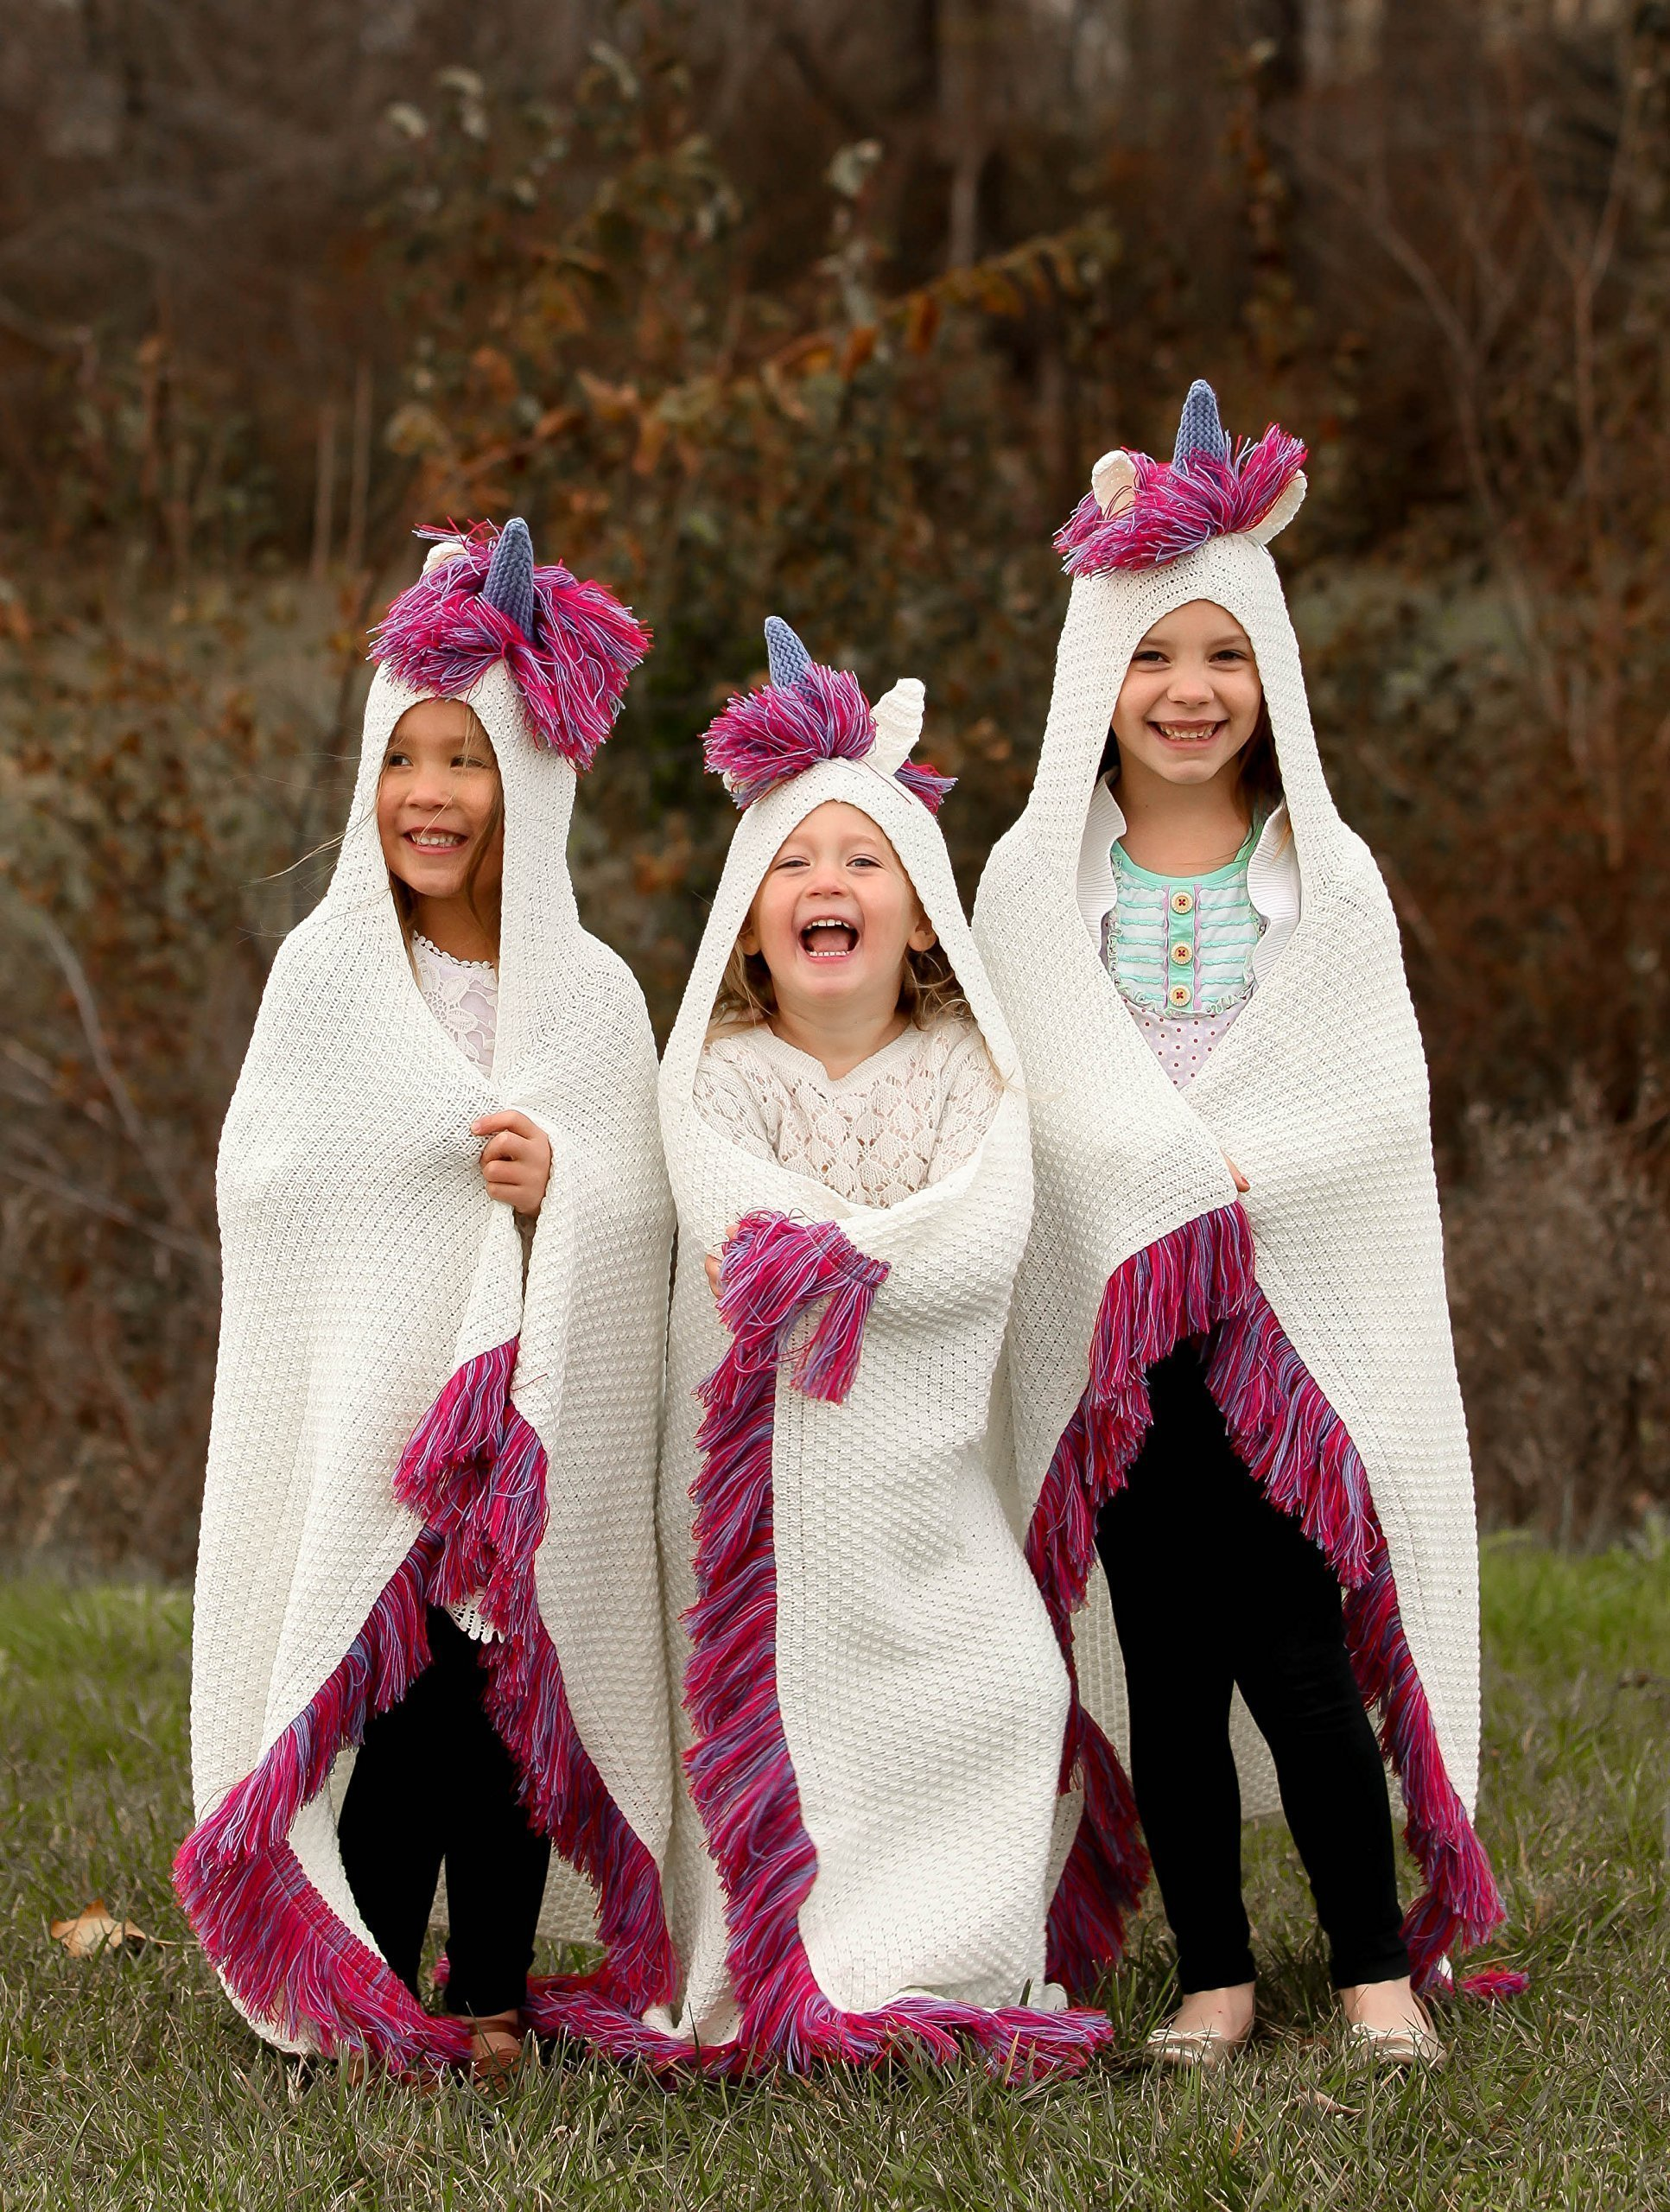 Born To Unicorn Blanket for Girls- Hooded, Kids Pink, Purple Wearable Crochet Knit w/Hood Throw Blankets Wrap, Toddlers Cute Plush Knitted Hoodie, Soft Kids Blanket Gift, Cozy Magic Cloak w/Hood by Born To Unicorn (Image #2)